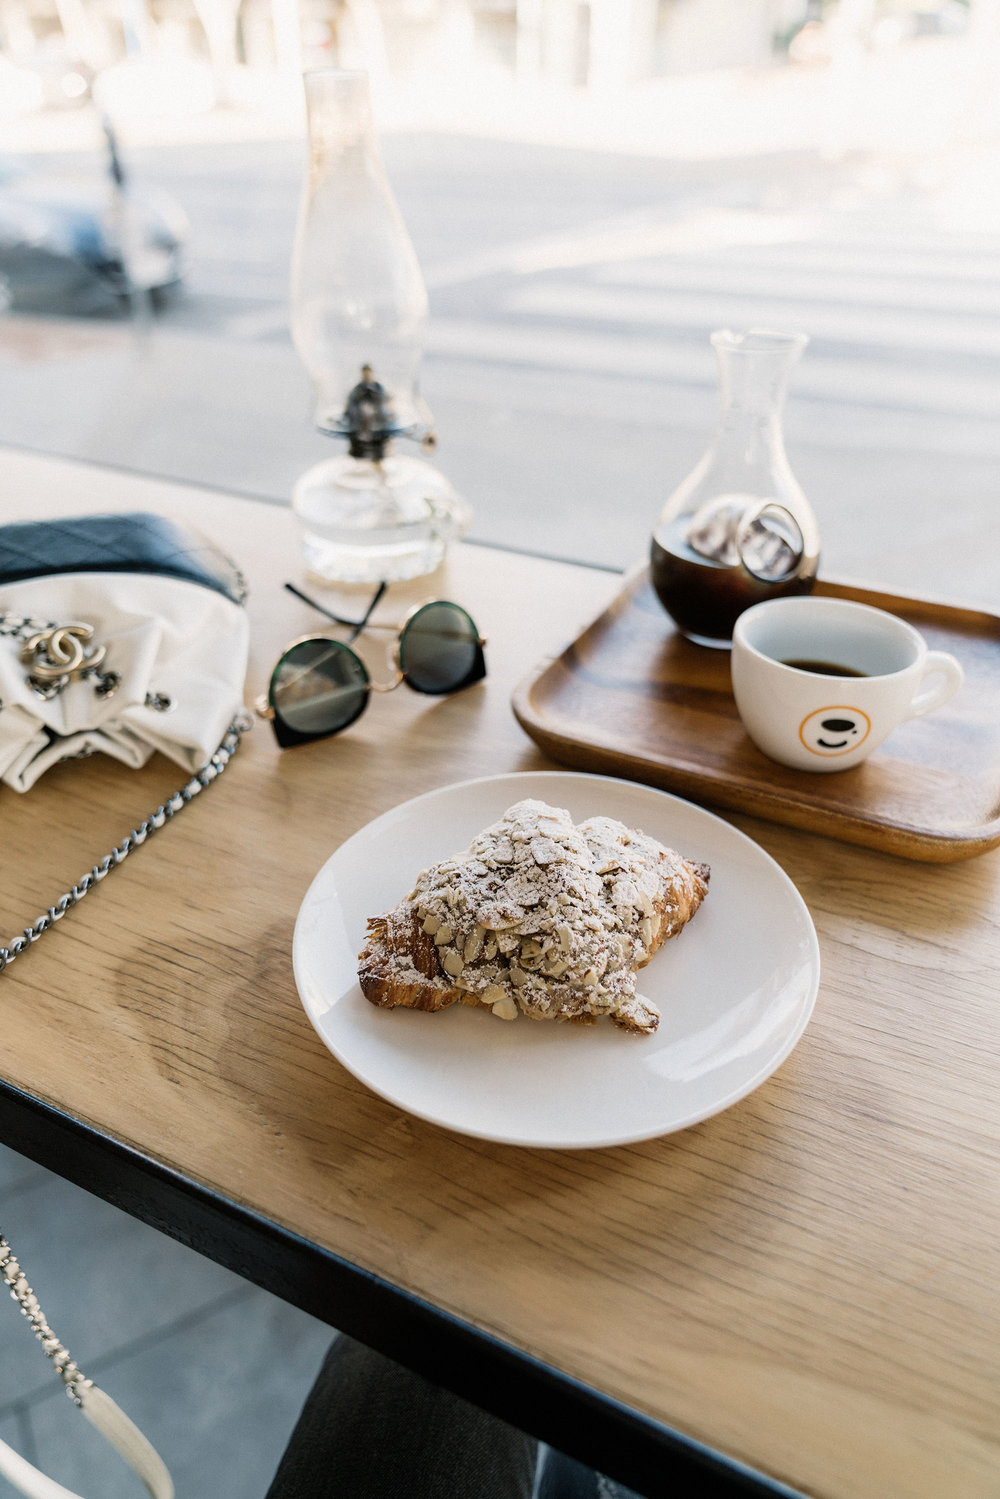 Quick coffee stop at  Demitasse